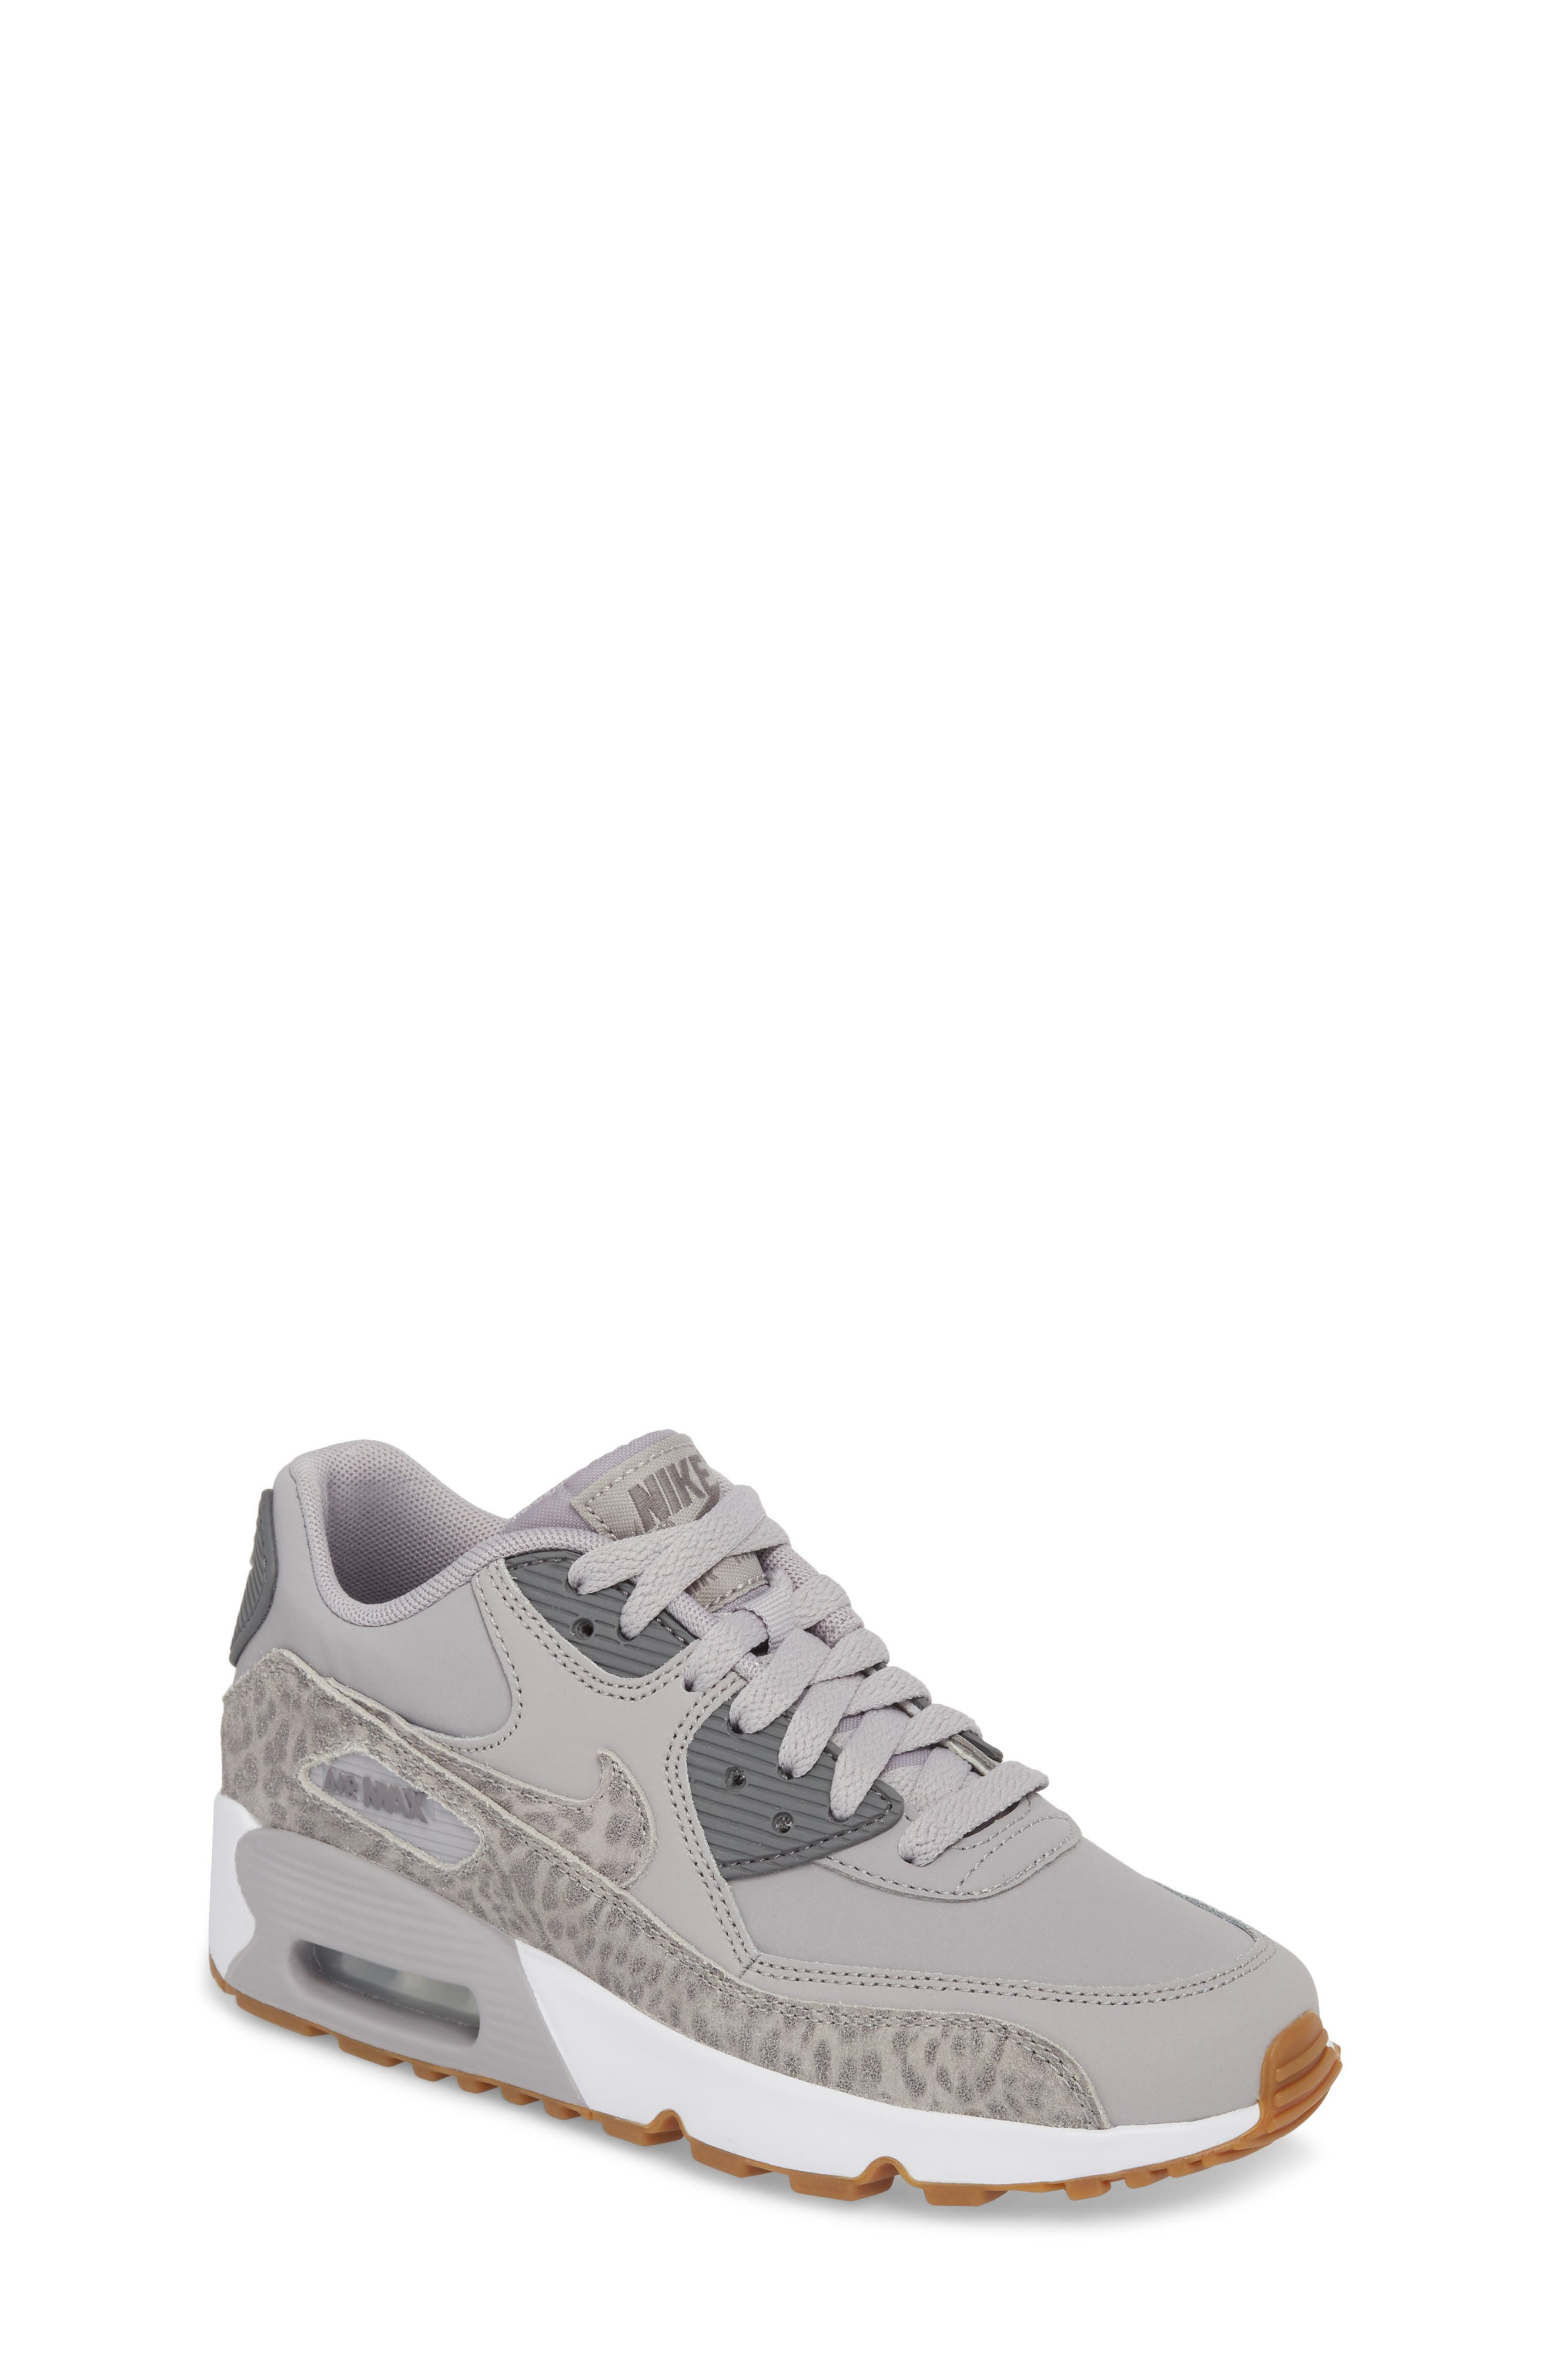 Air Max 90 Leather Sneaker,                         Main,                         color, Atmosphere Grey/ Smoke/ White